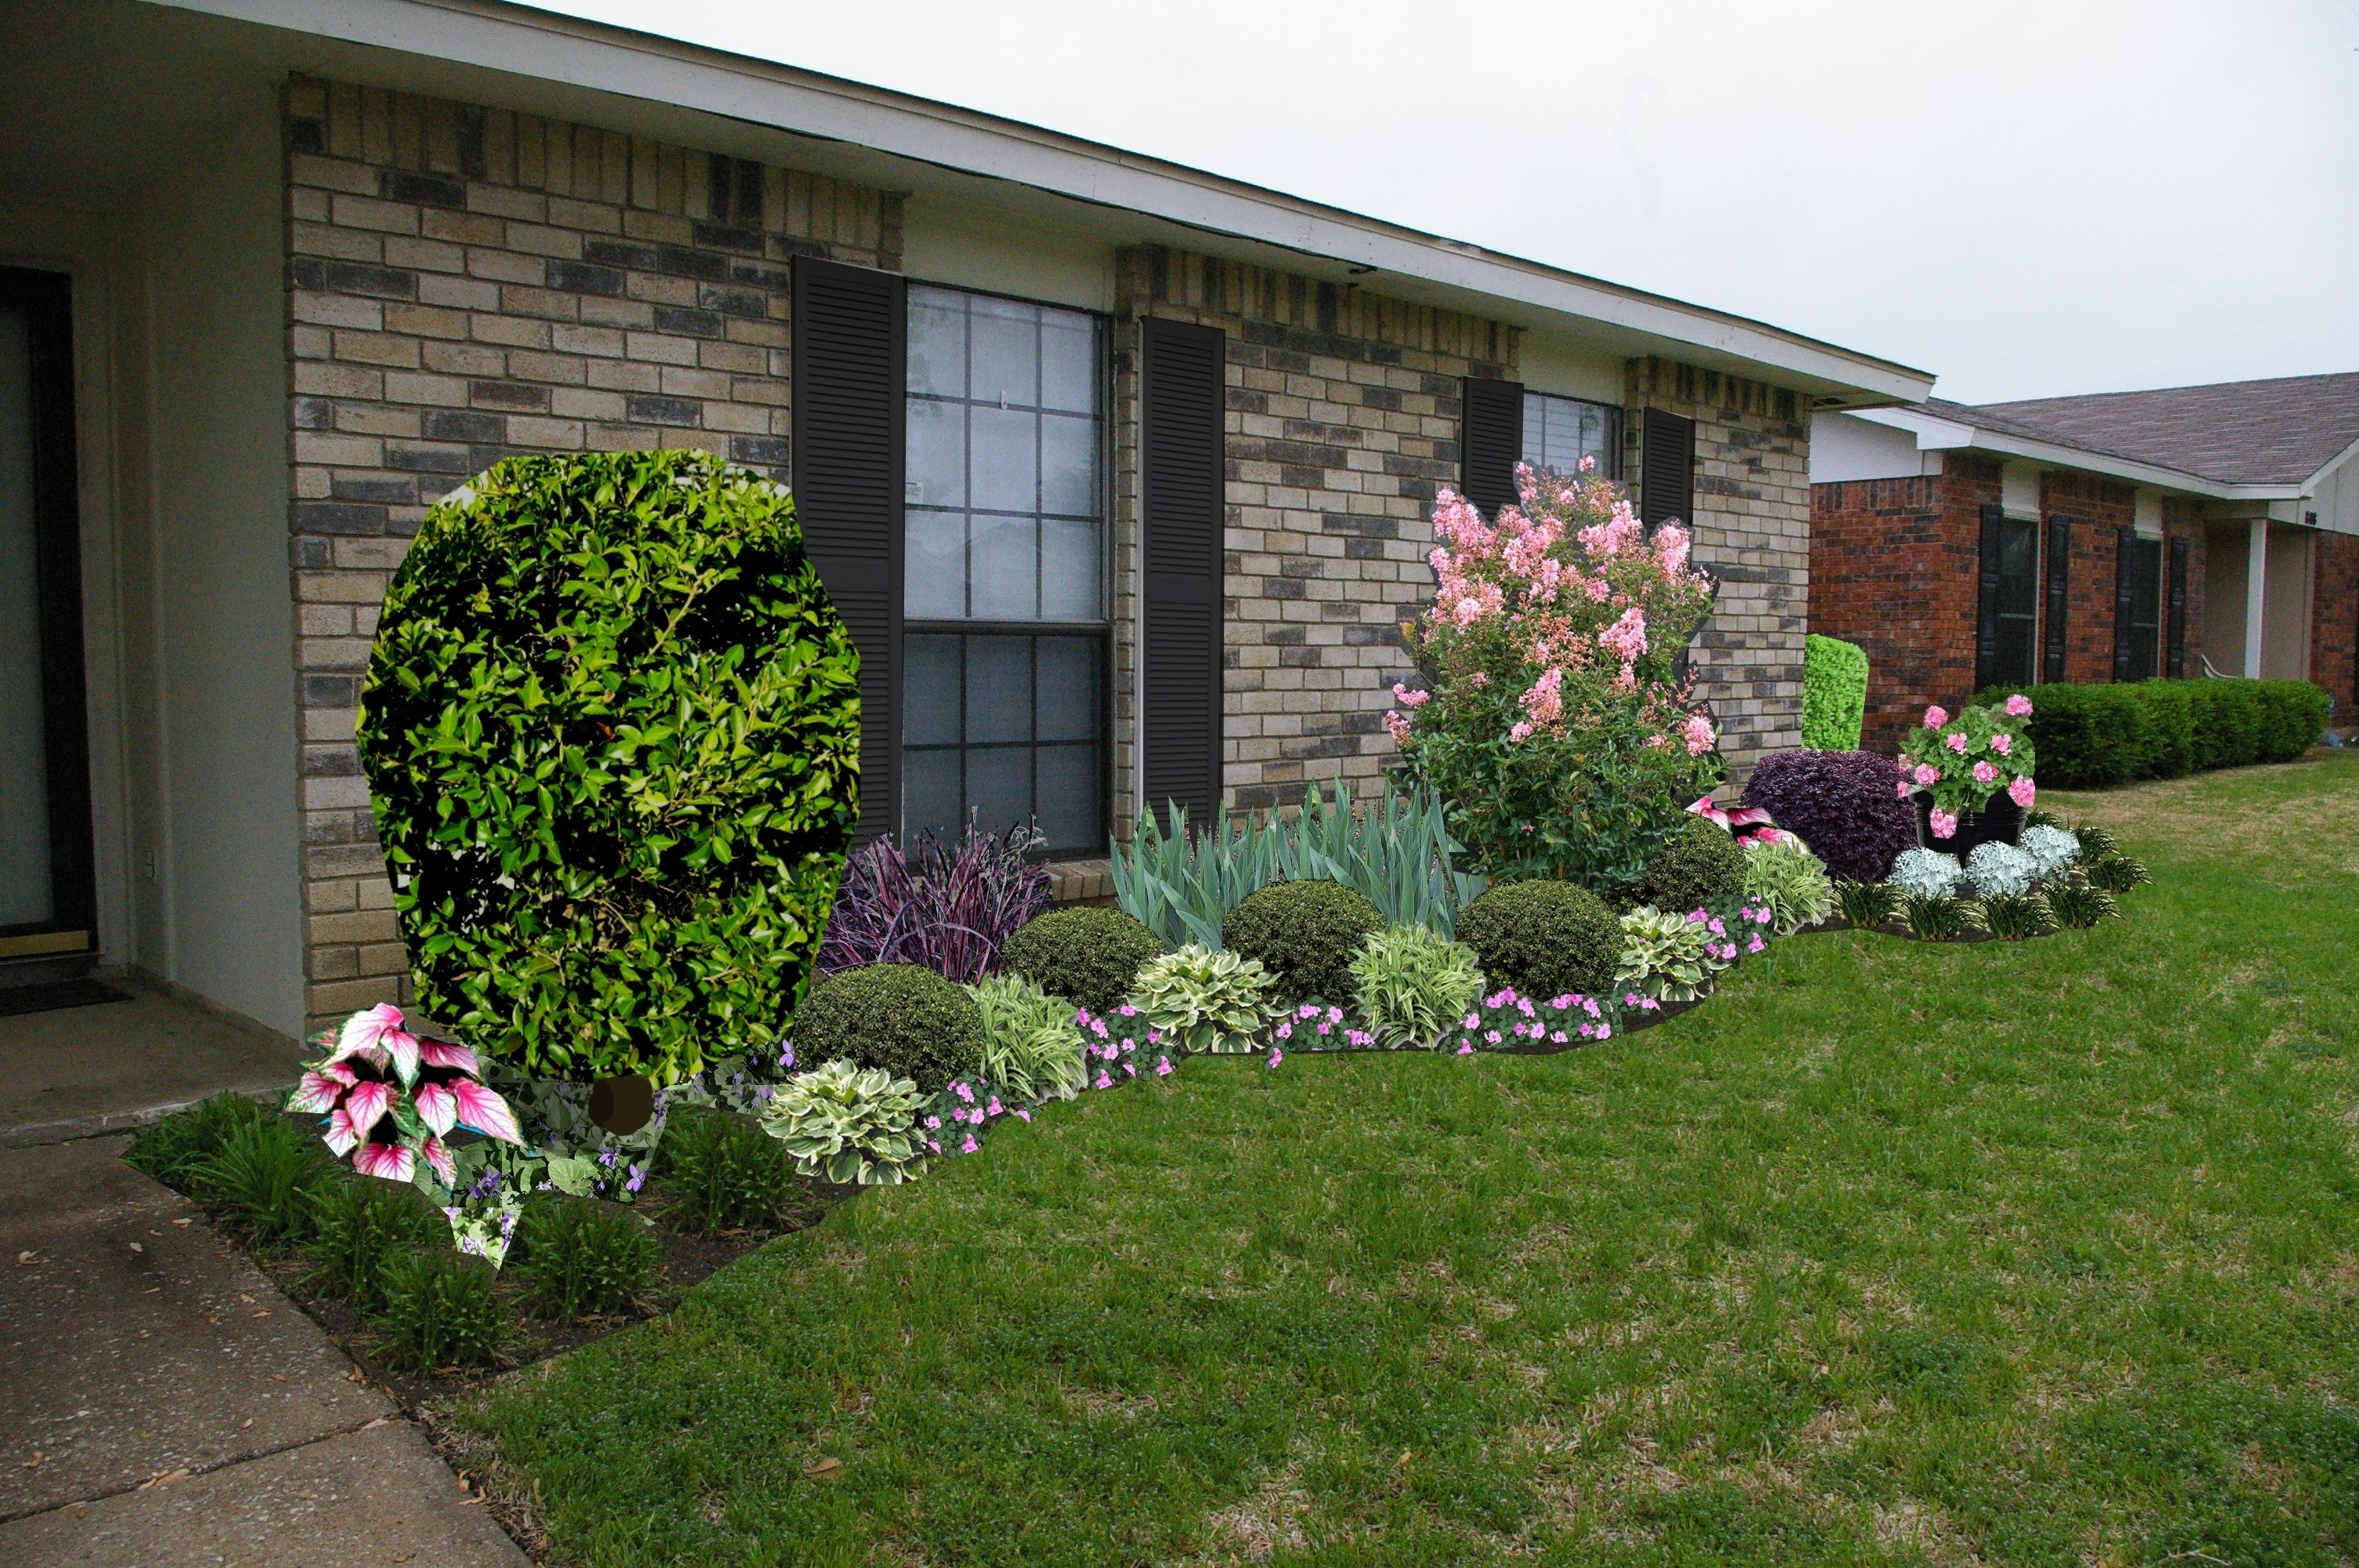 10 Nice Ideas For Front Yard Landscaping garden front yard landscaping ideas front yard landscape ideas 1 2020